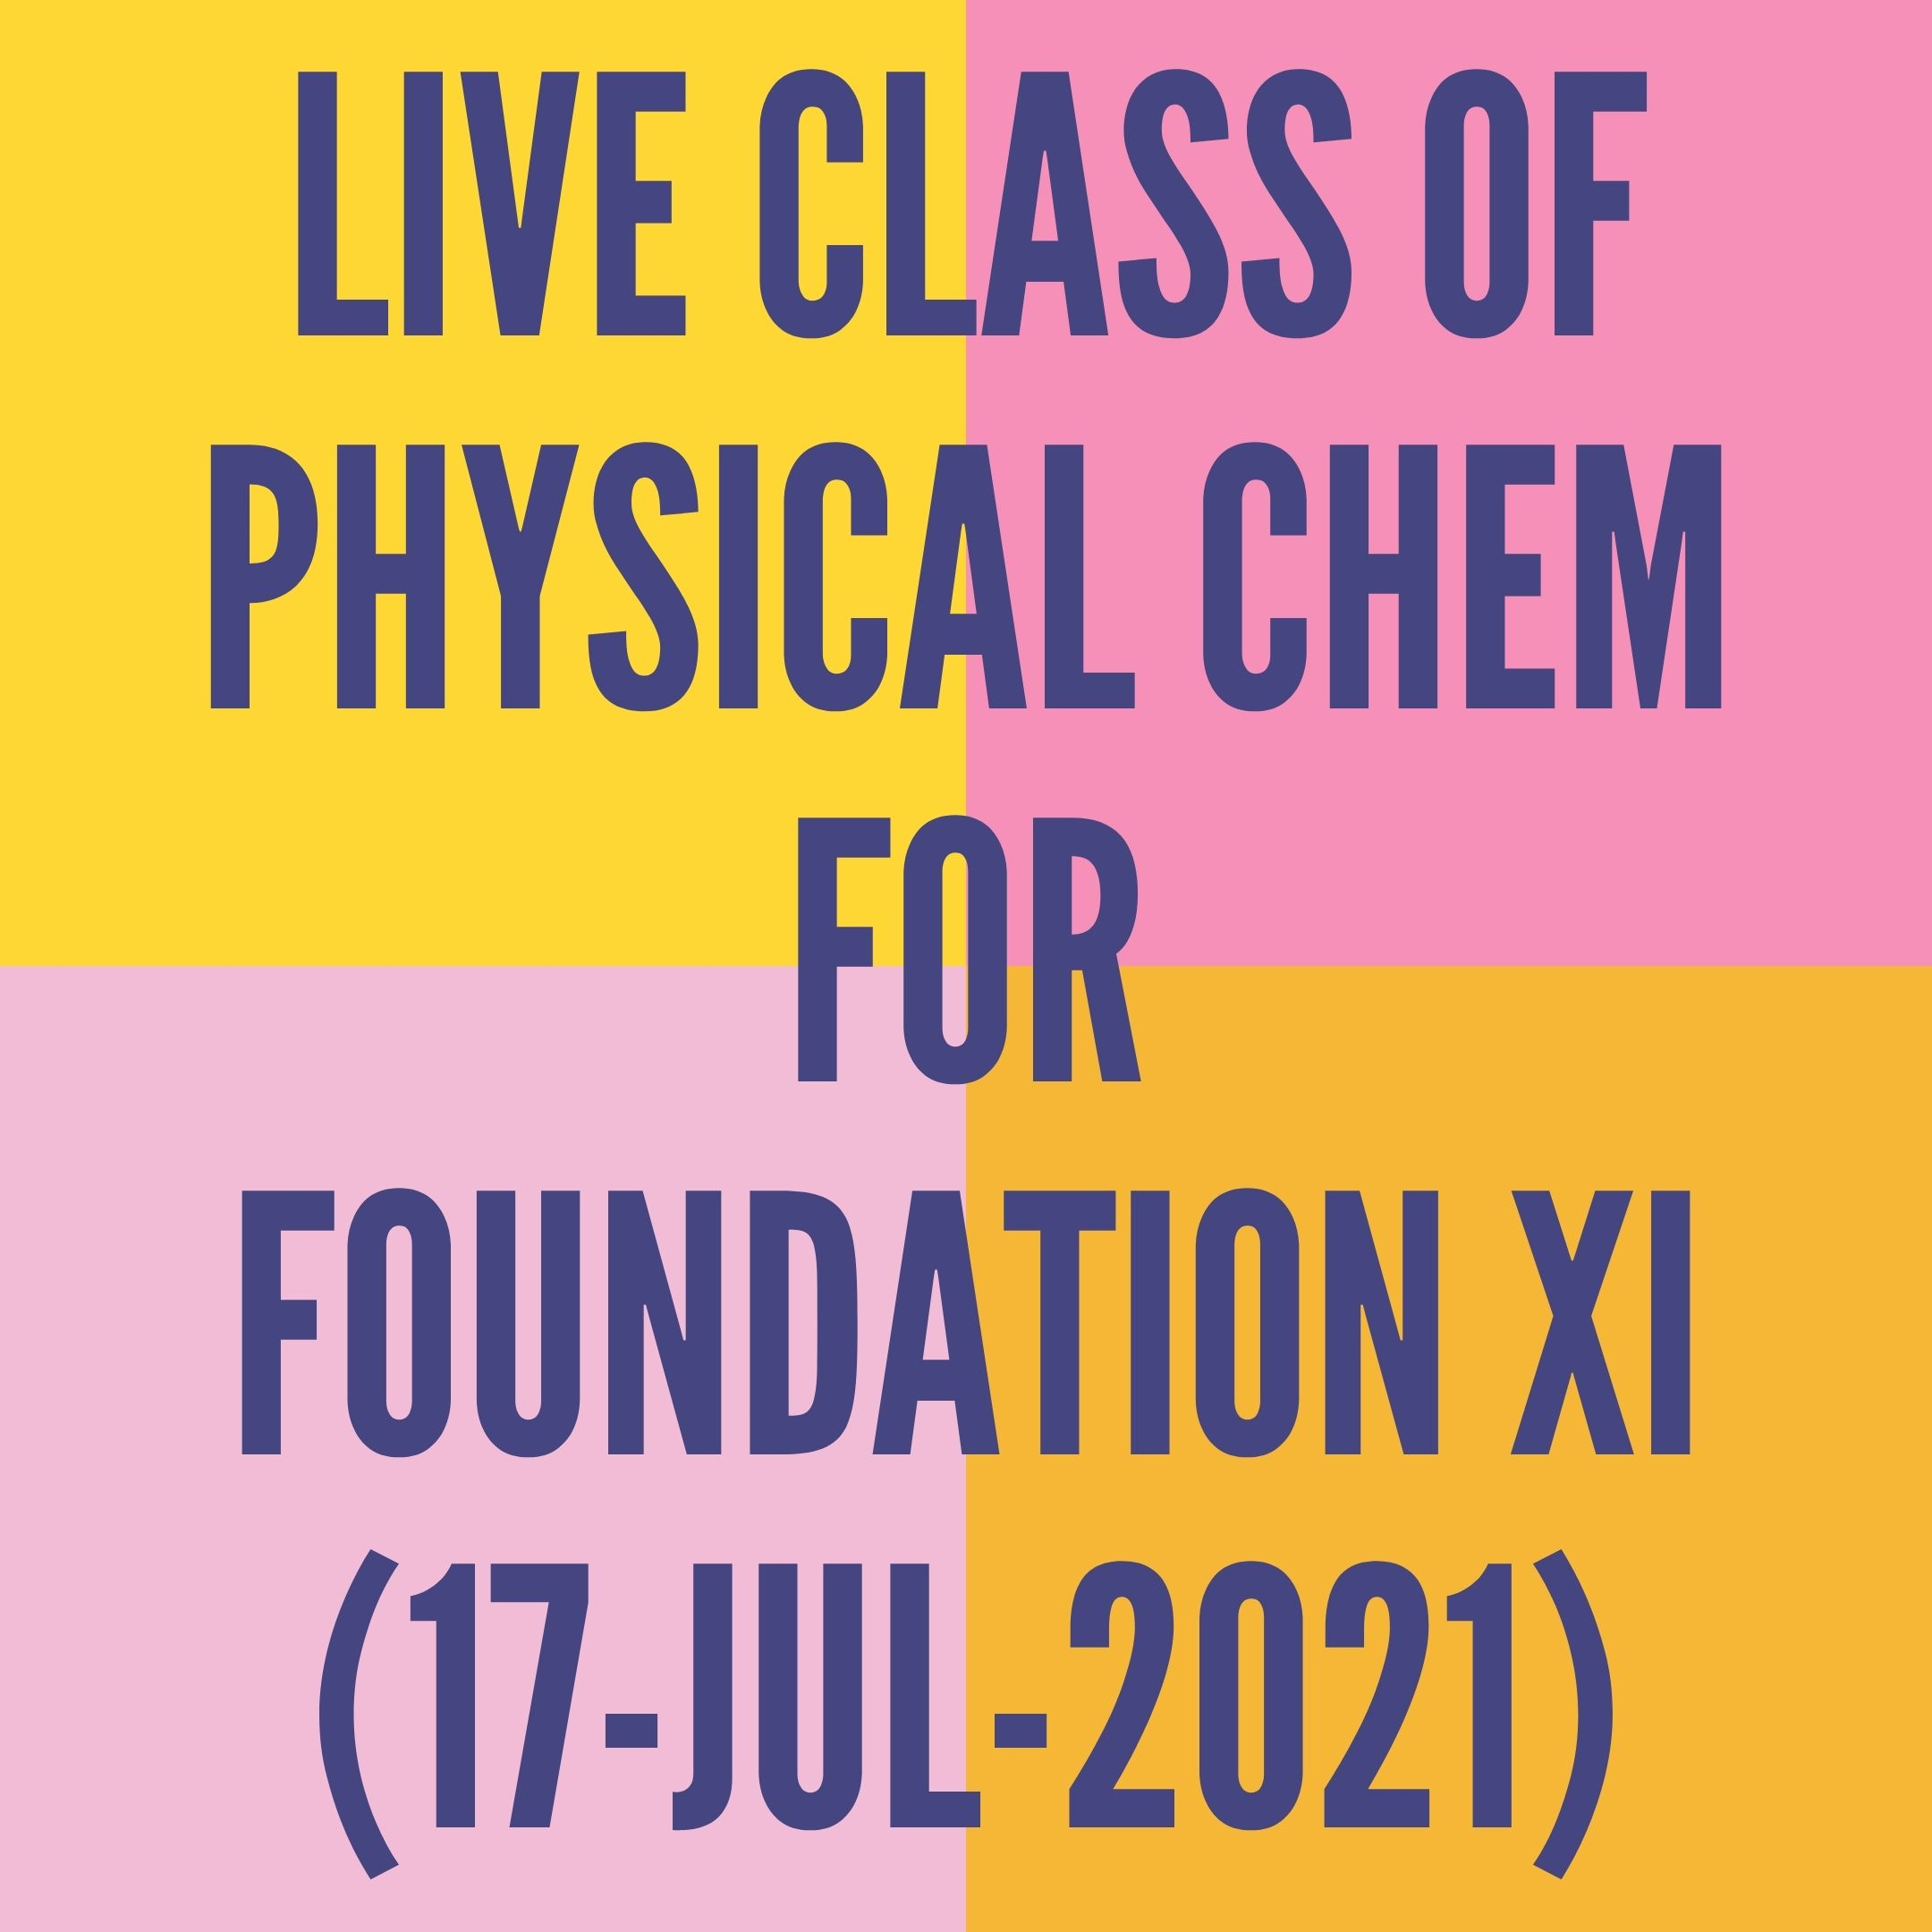 LIVE CLASS OF PHYSICAL CHEMISTRY FOR FOUNDATION XI (17-JUL-2021) REDOX REACTION